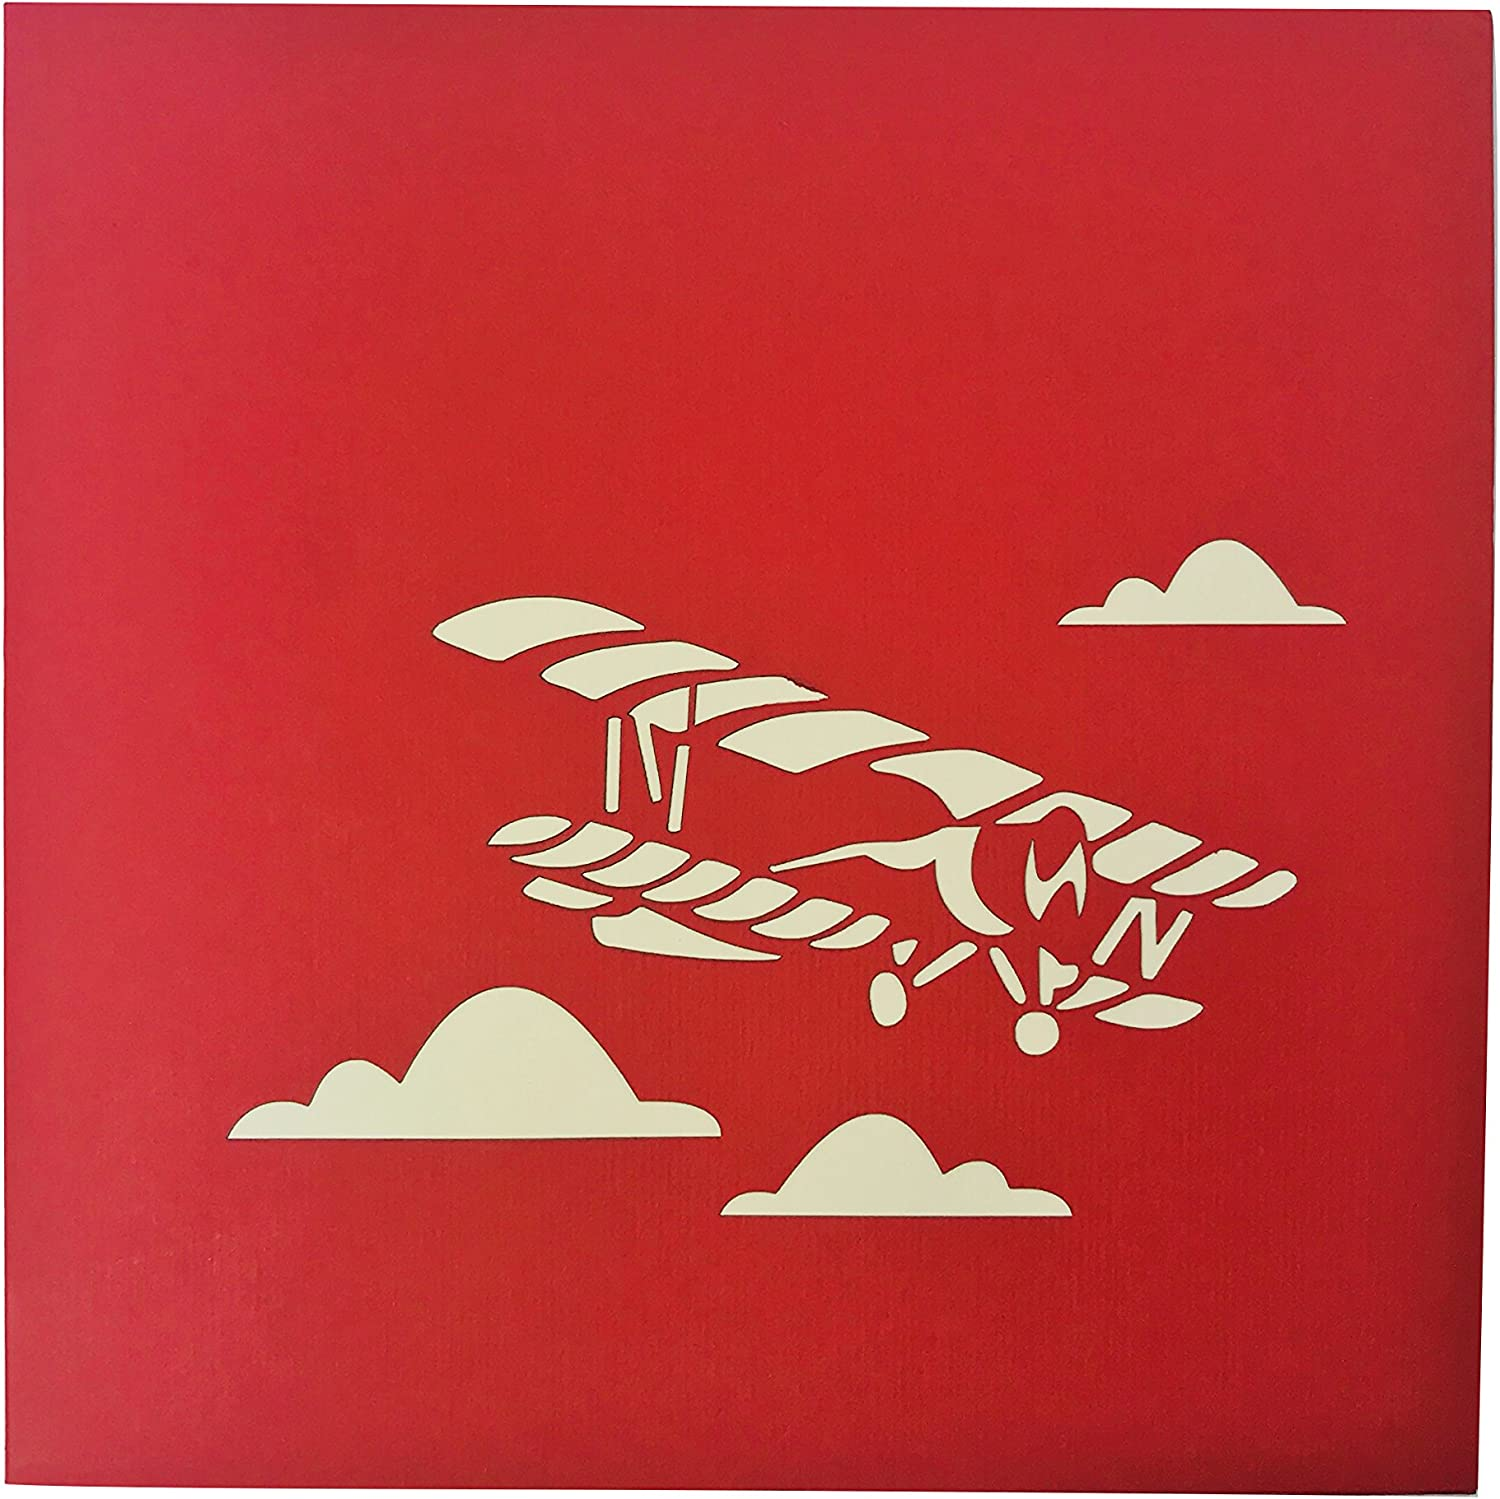 Good Bye Wow 3D Pop Up Card for All Occasions Get Well Good Luck Congratulations Red Airplane Birthday Anniversary Love